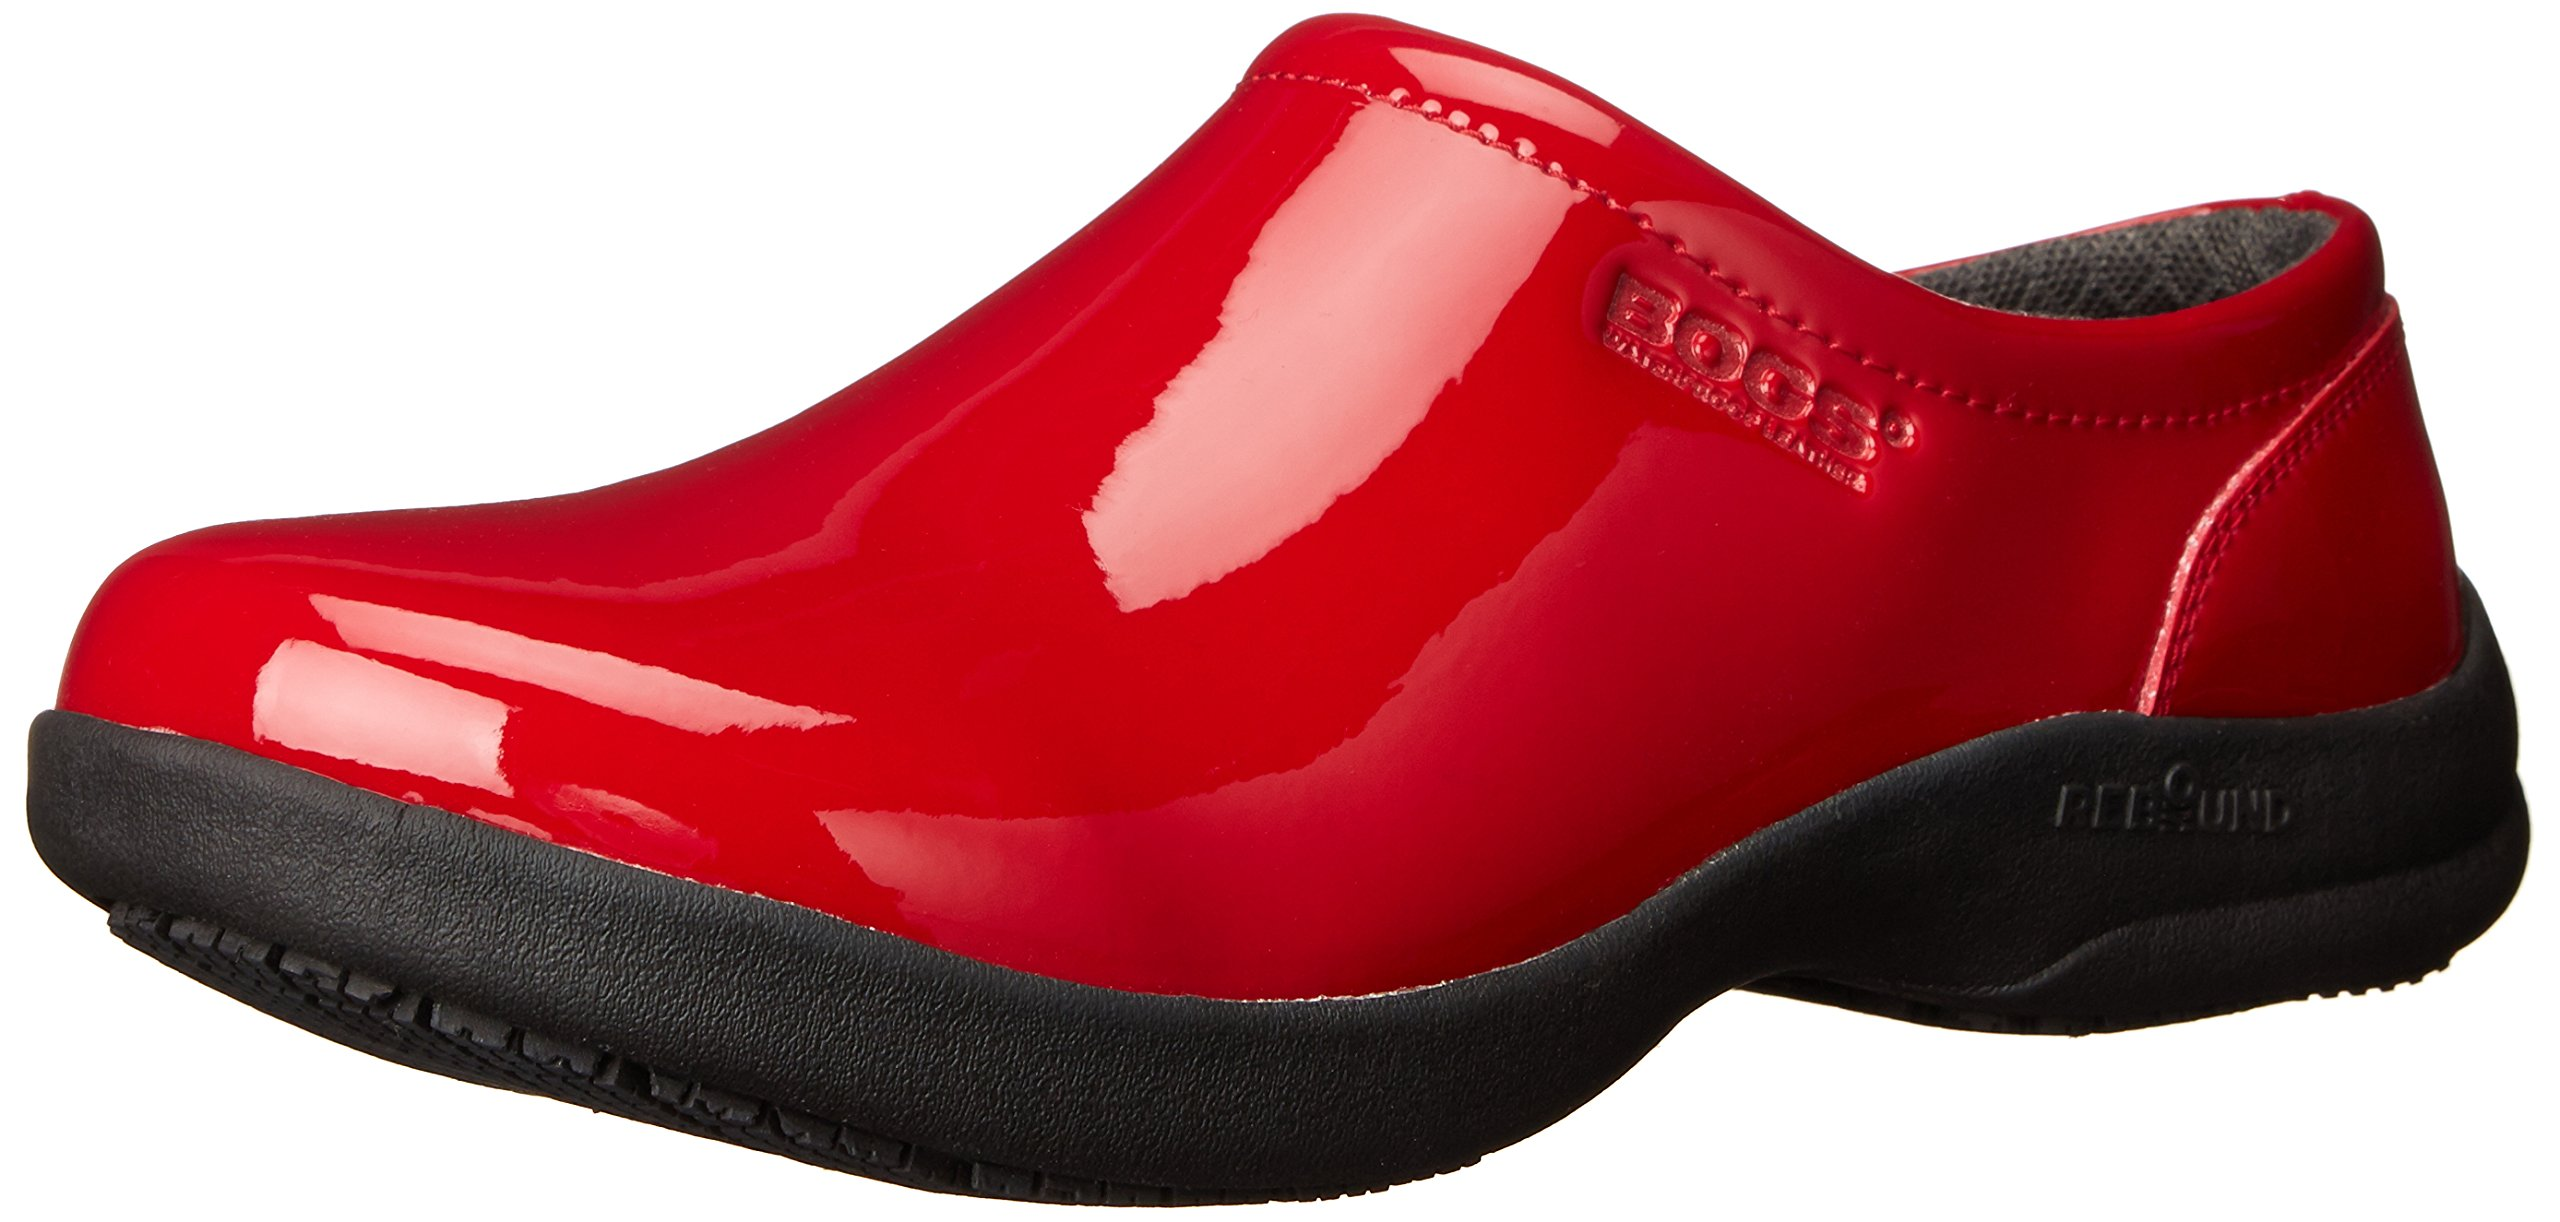 Bogs Women's Ramsey Patent Leather Slip Resistant Work Shoe, Red, 8 M US